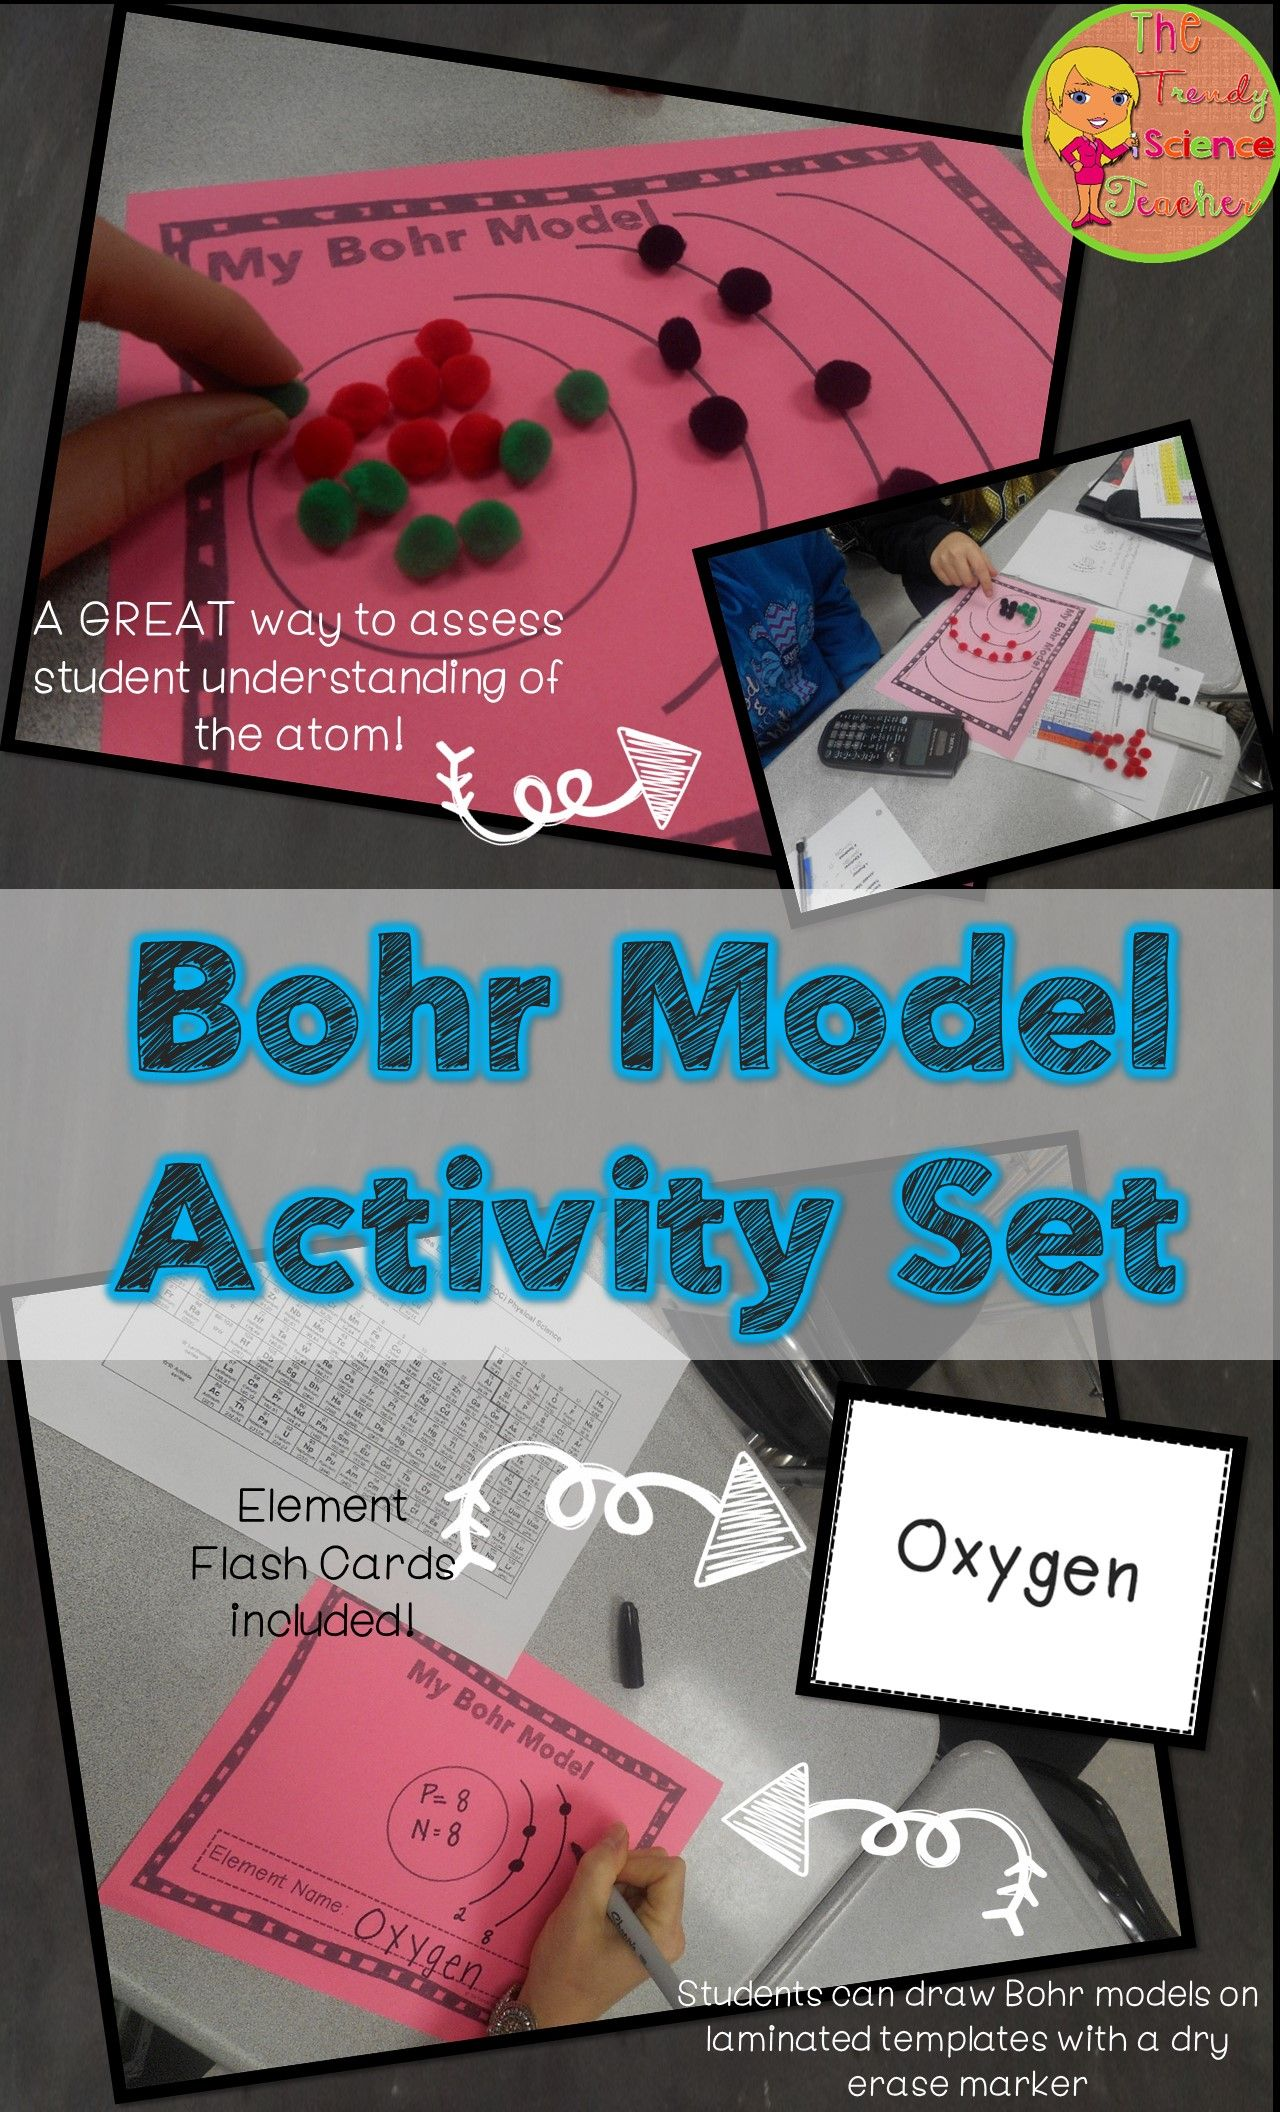 Bohr model activity set kinesthetic learning knowledge and activities need an engaging way to teachreinforce bohr models to your middle school students urtaz Gallery